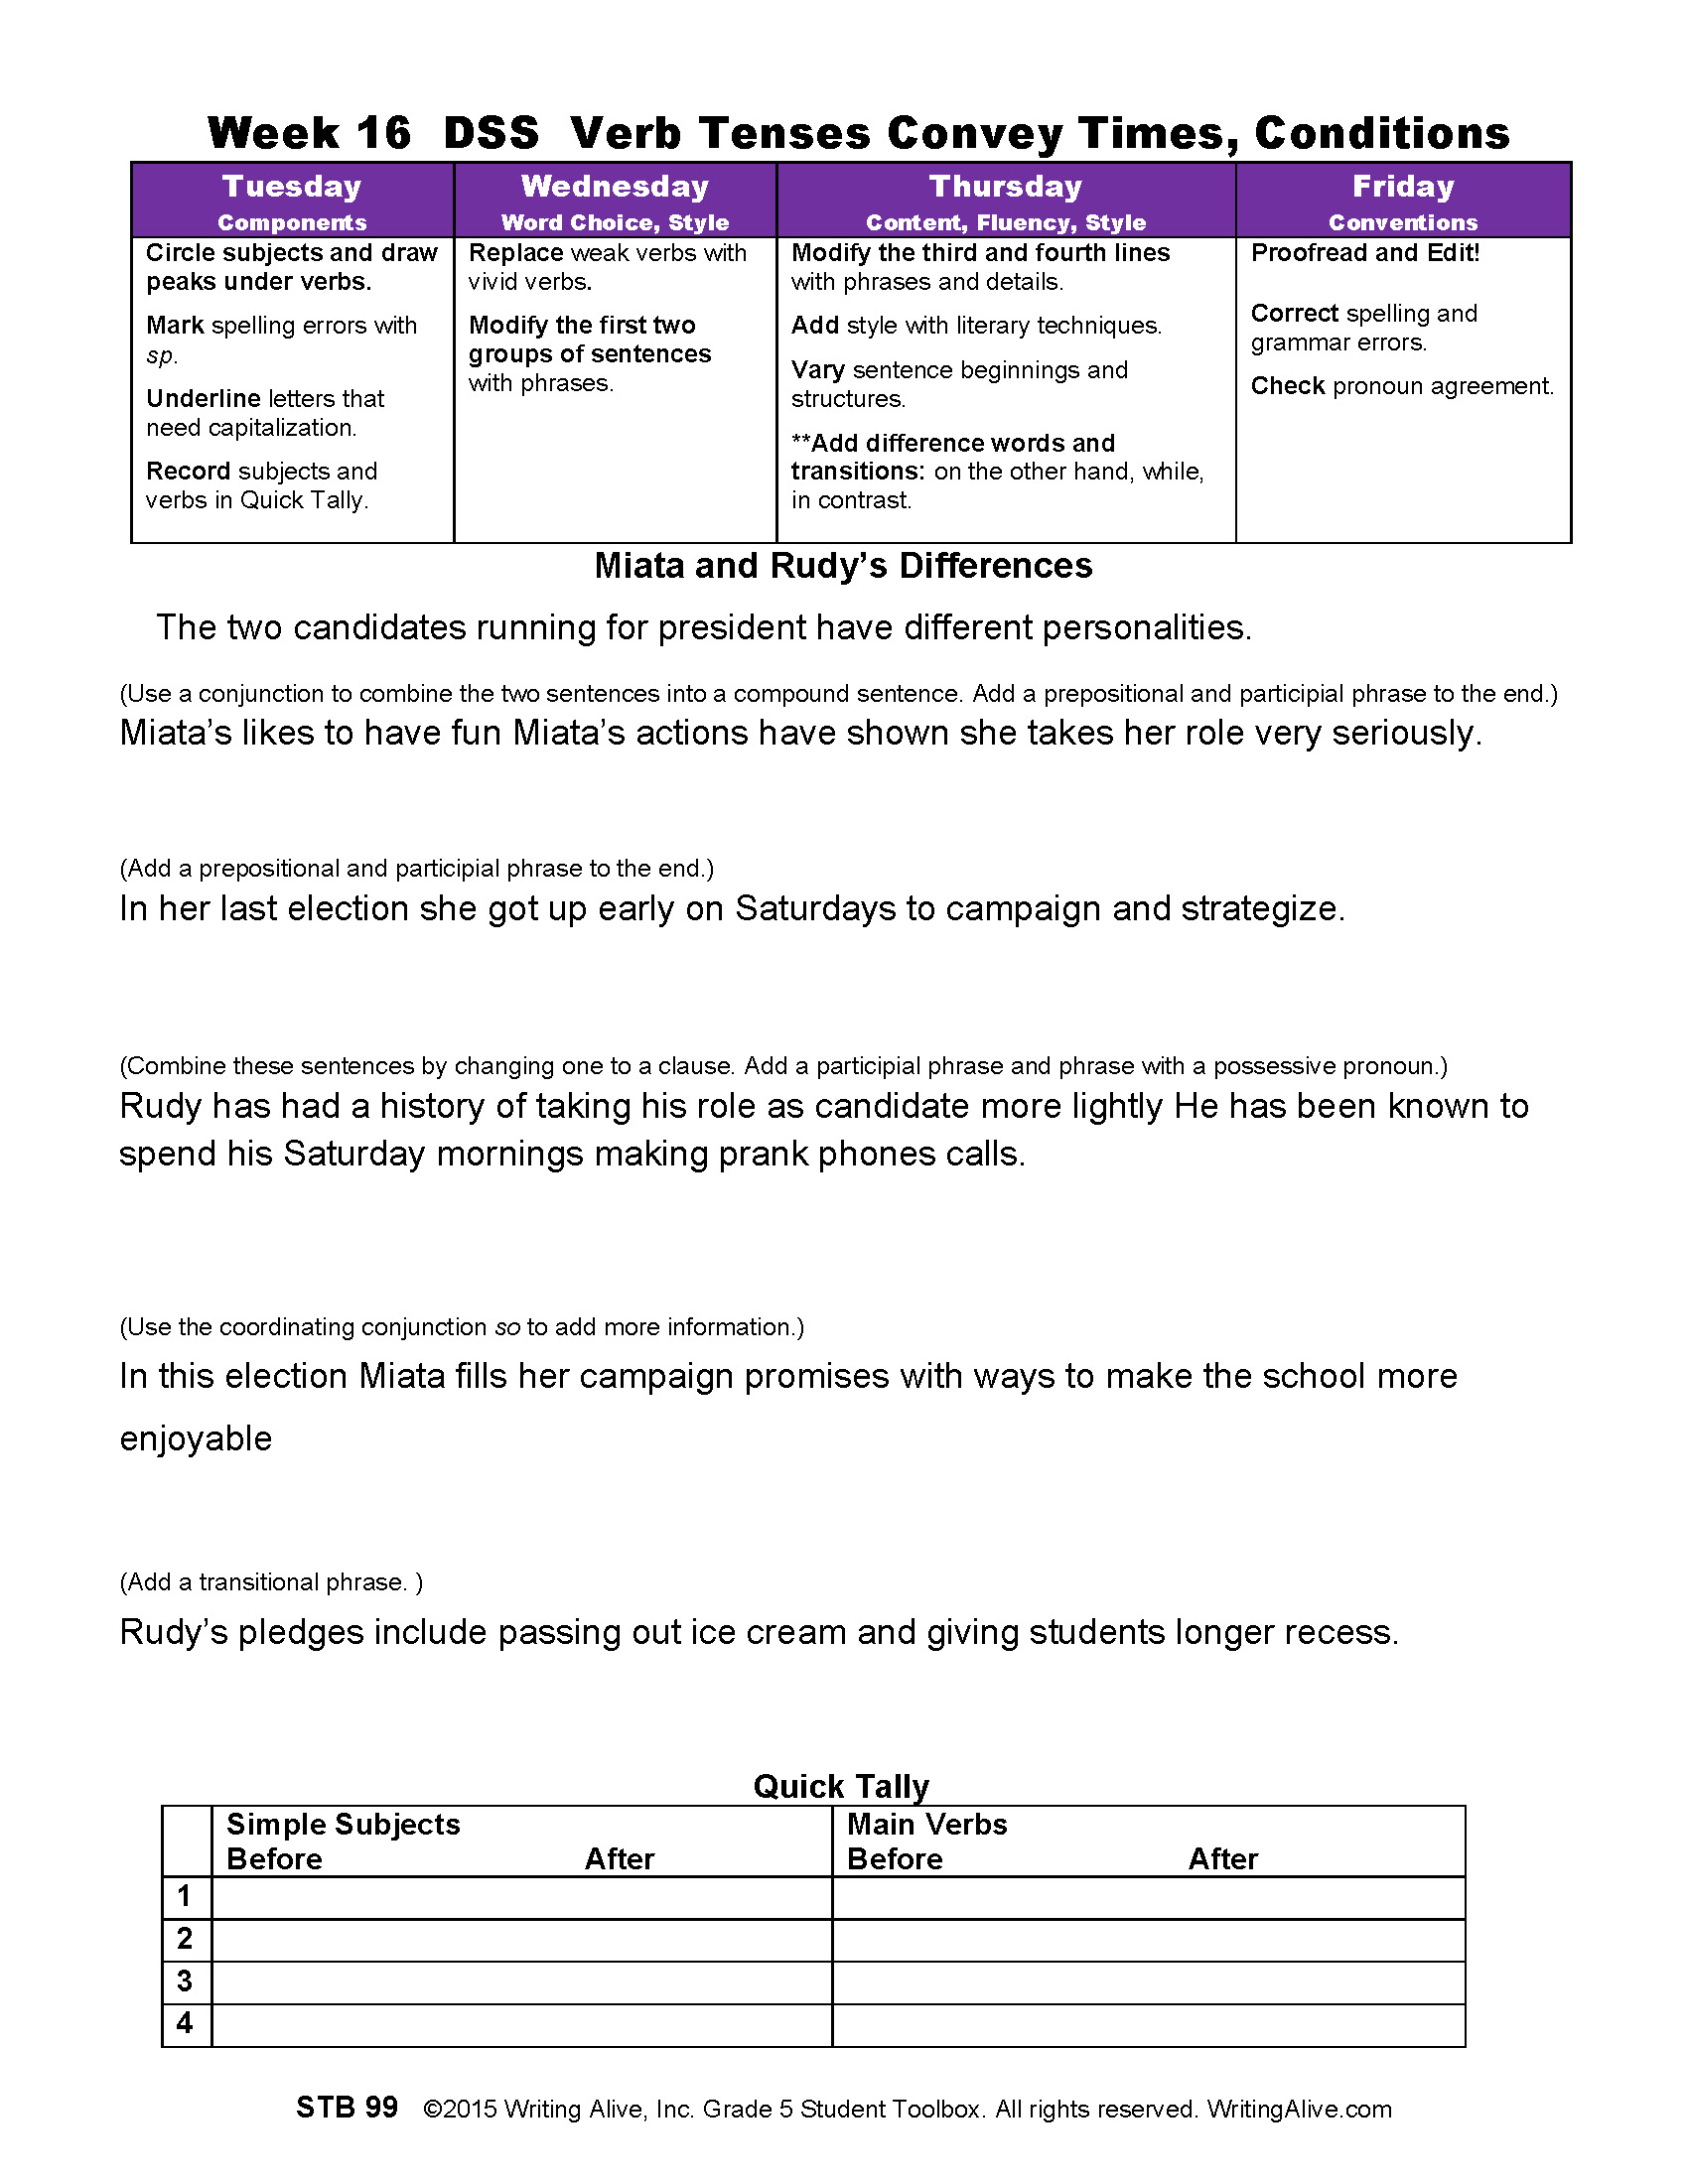 Dss Week 16 Verb Forms And Tenses Convey Times And